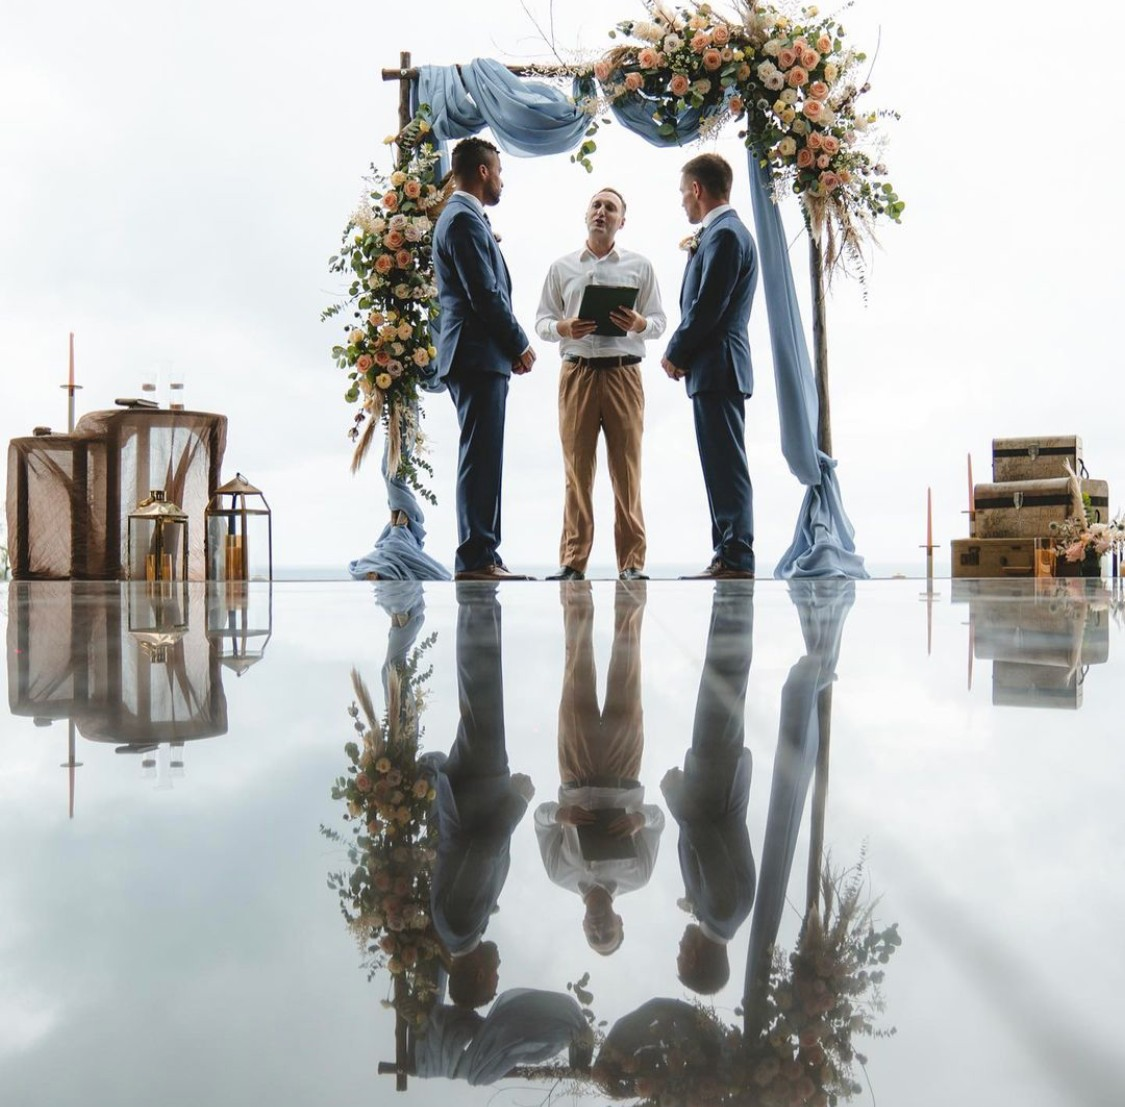 Allen and Chase married in Phuket, Thailand